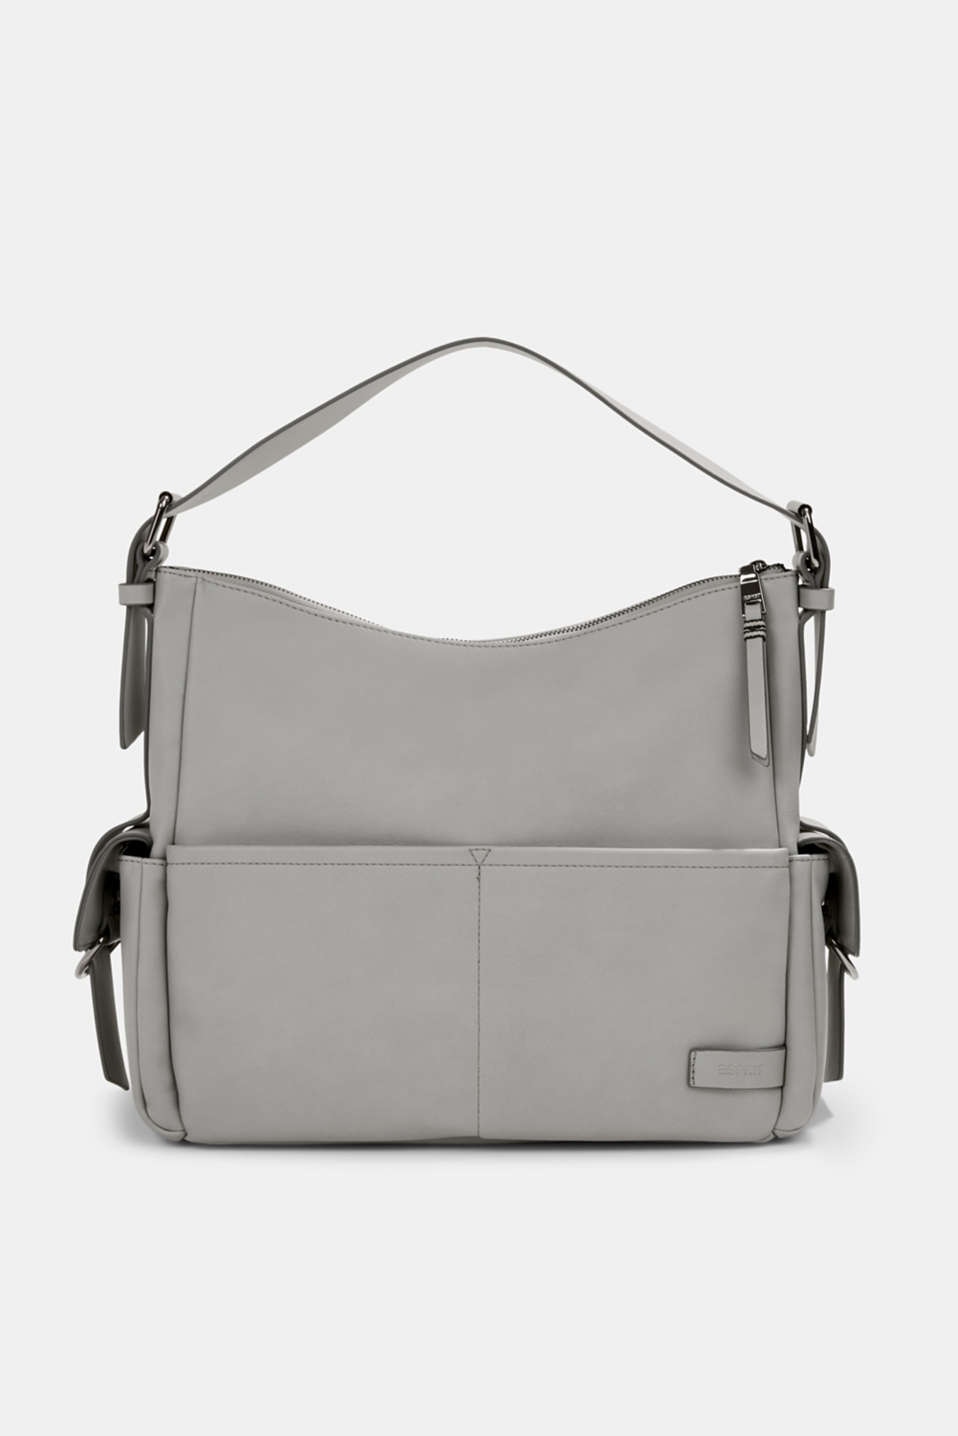 Esprit - Vegan: faux leather hobo bag